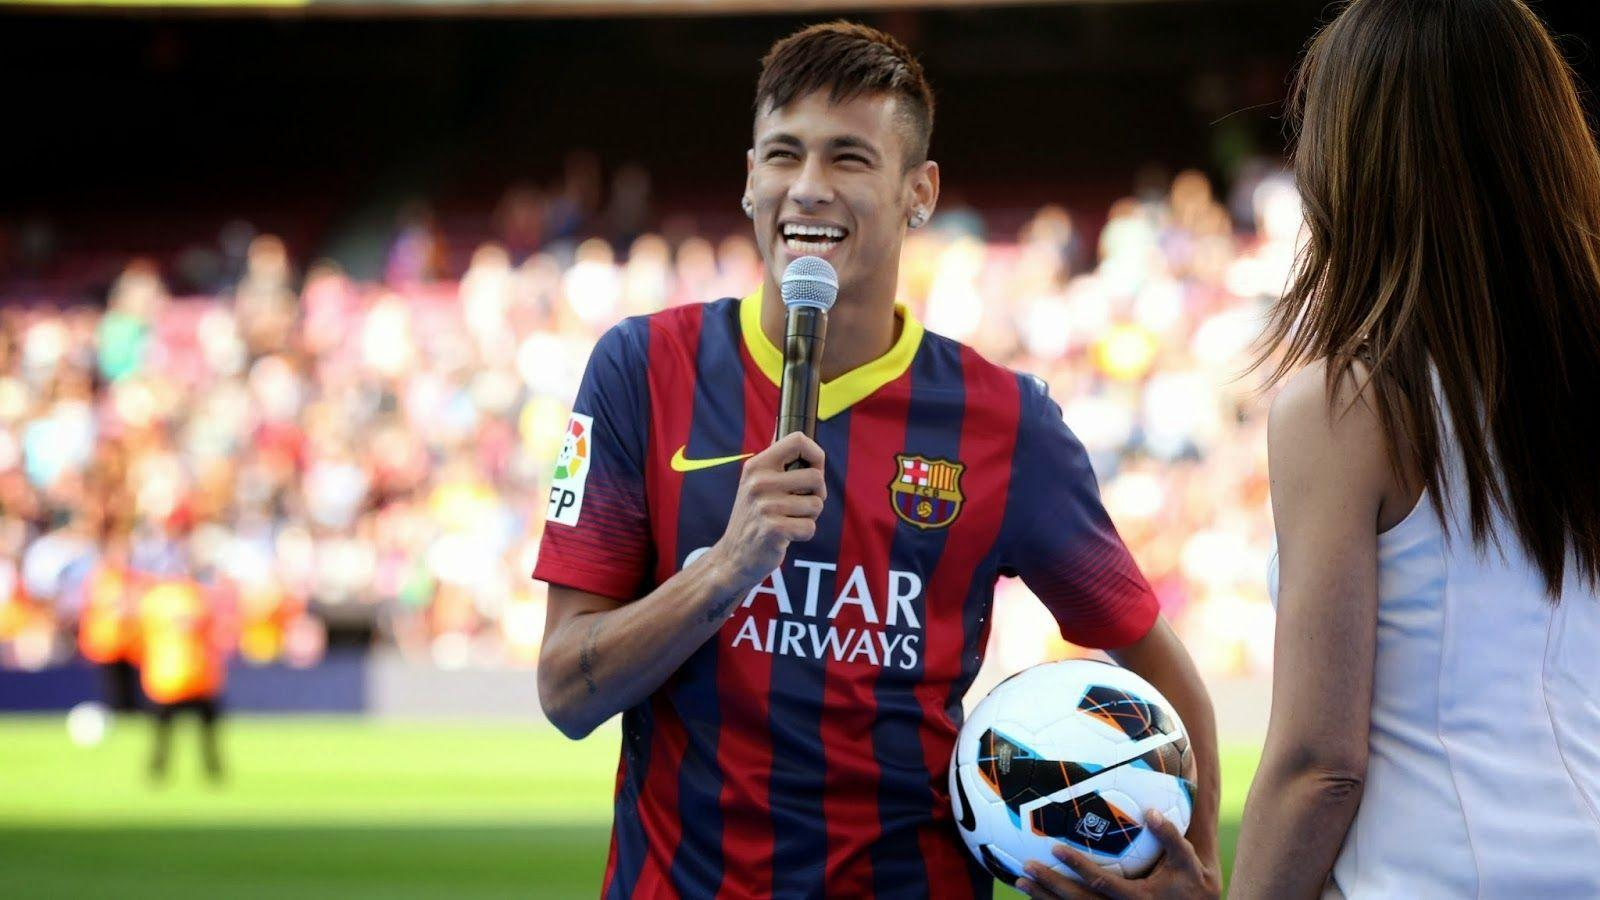 ALL SPORTS PLAYERS: Neymar Jr hd Wallpapers 2014